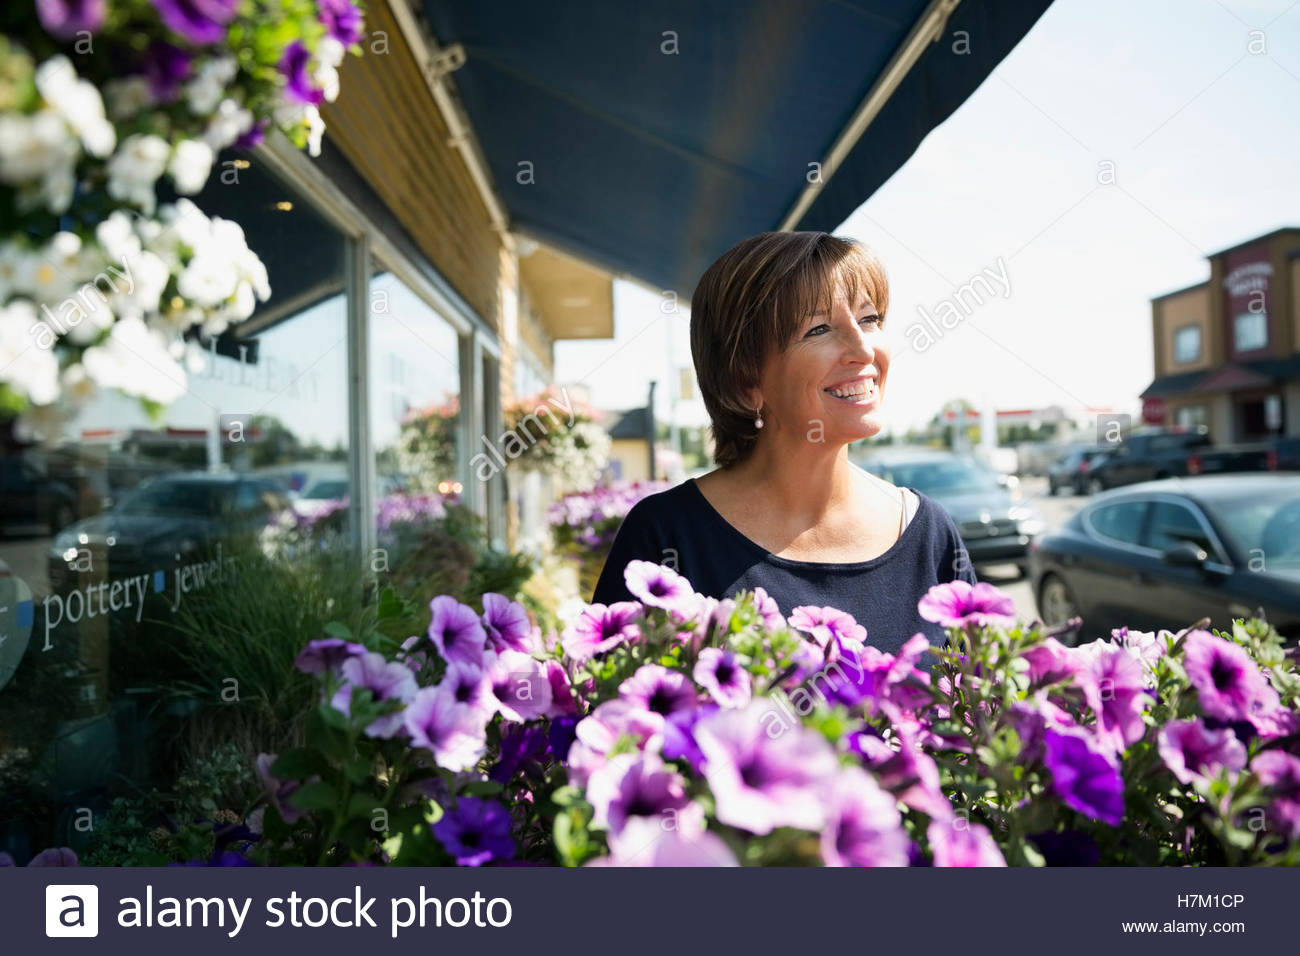 Smiling mature woman at sunny flower shop storefront Photo Stock